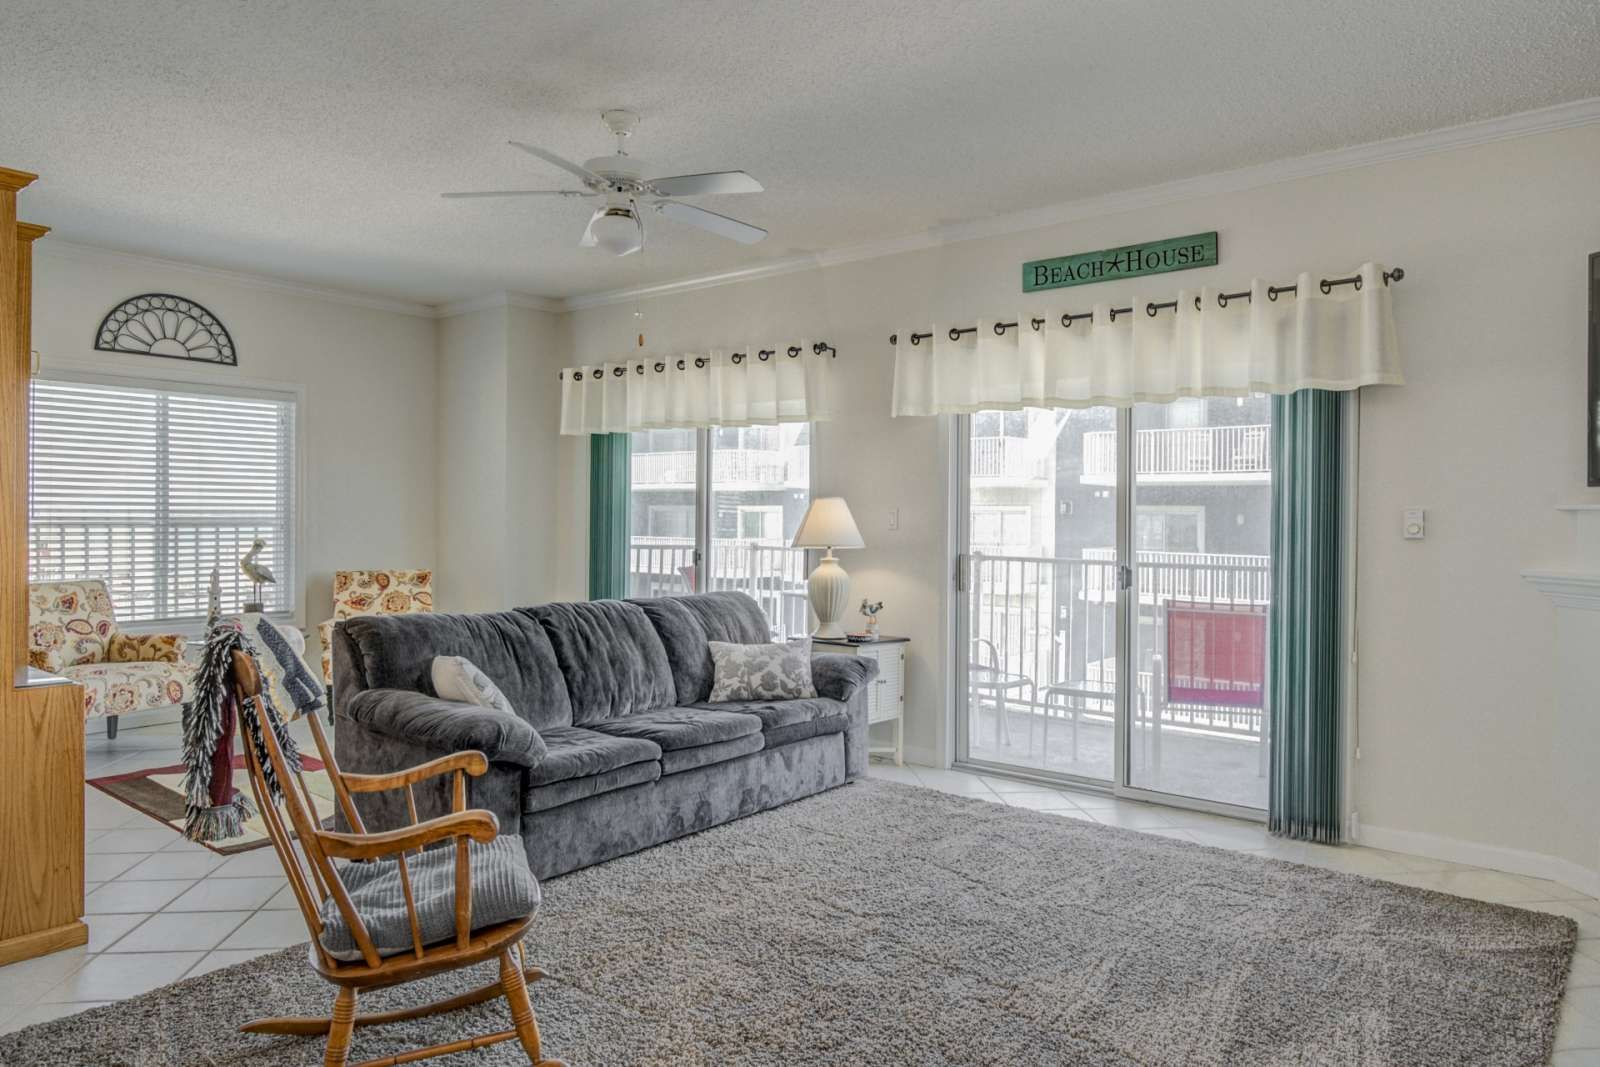 Pin on Ocean City, MD Vacation Guide Find Rentals, Travel